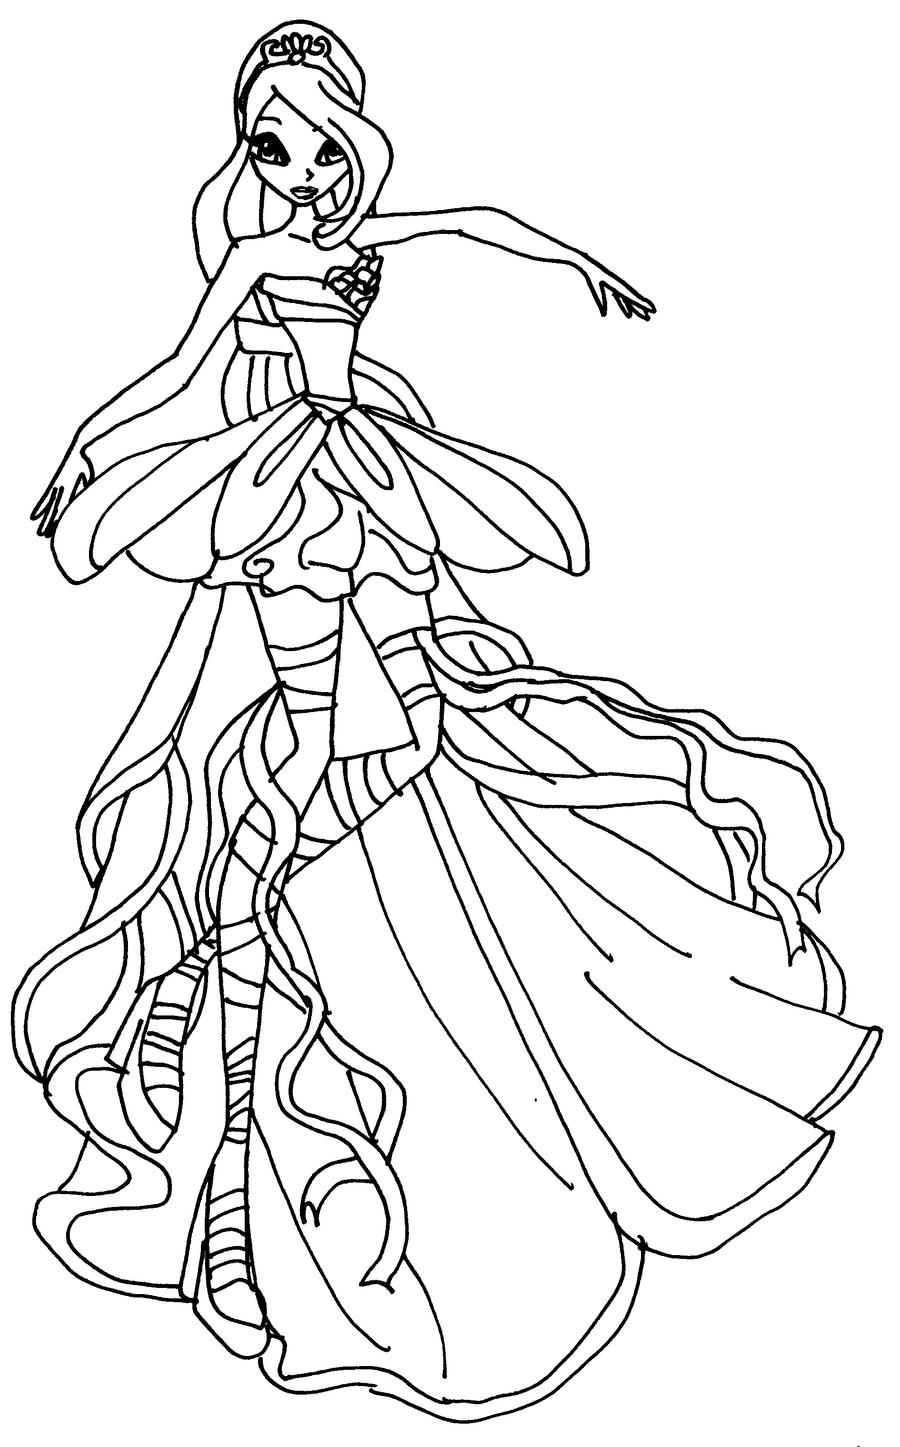 Coloring Pages Le Bloom : Bloom hrmonix colouring pages